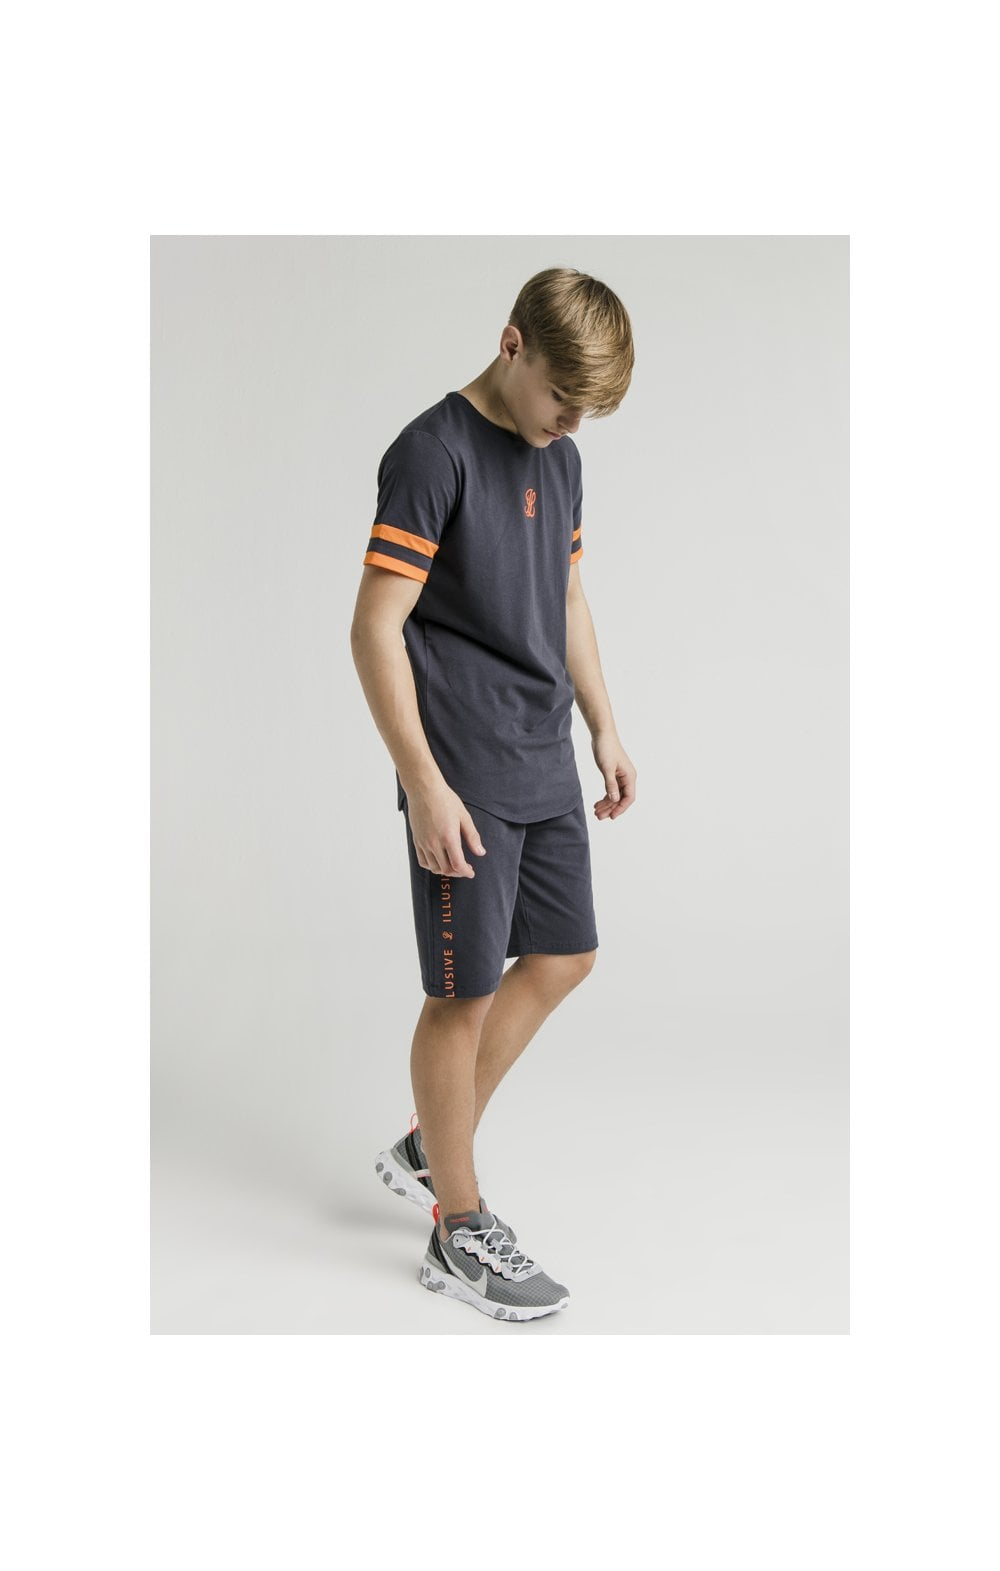 Load image into Gallery viewer, Illusive London Jersey Shorts – Grey & Orange (4)